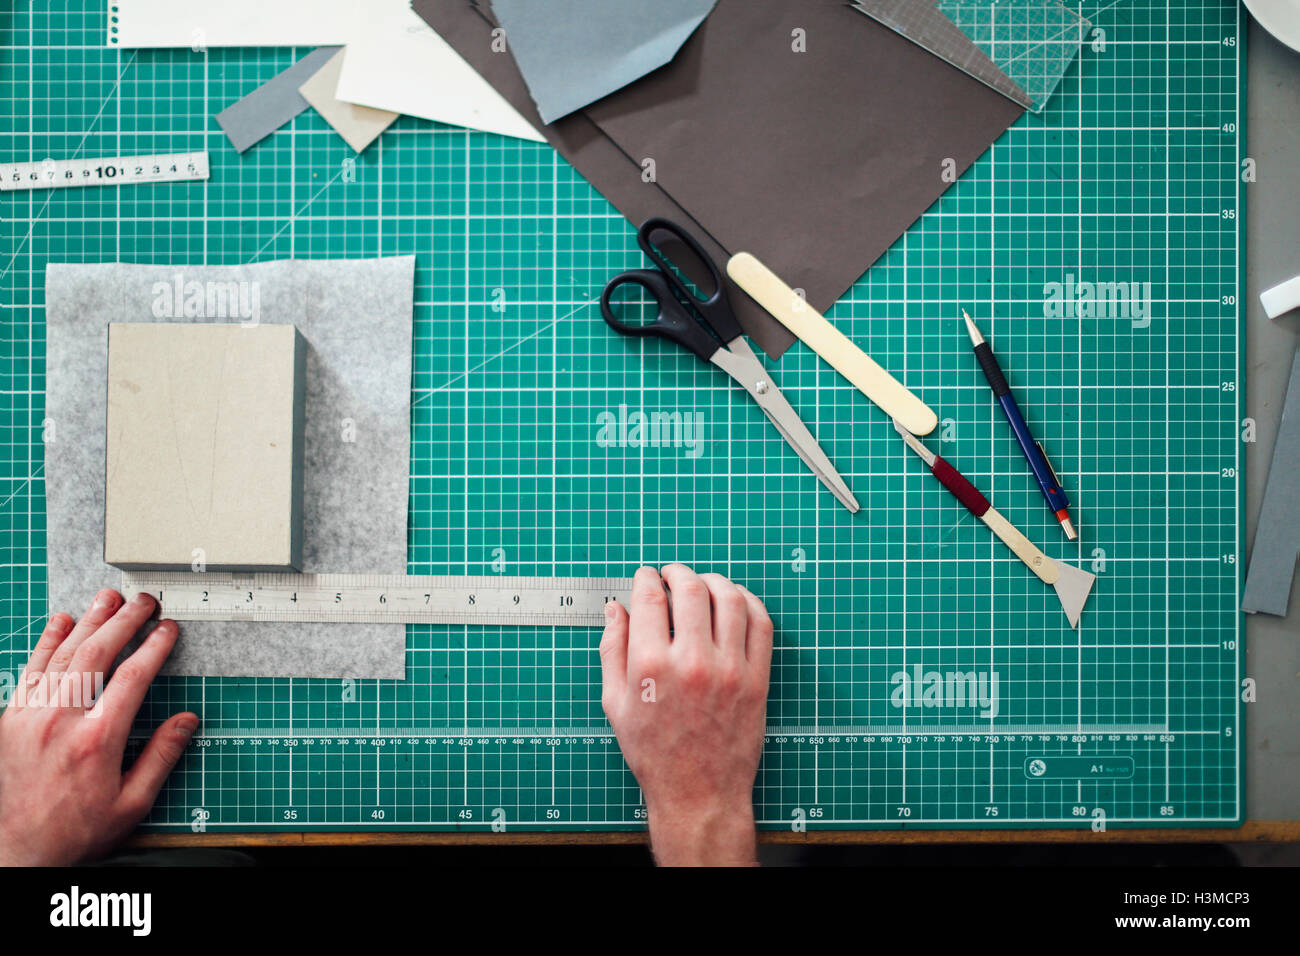 Overhead detail of hands, paper, cutting mat, ruler, scalpel and scissors in print studio - Stock Image